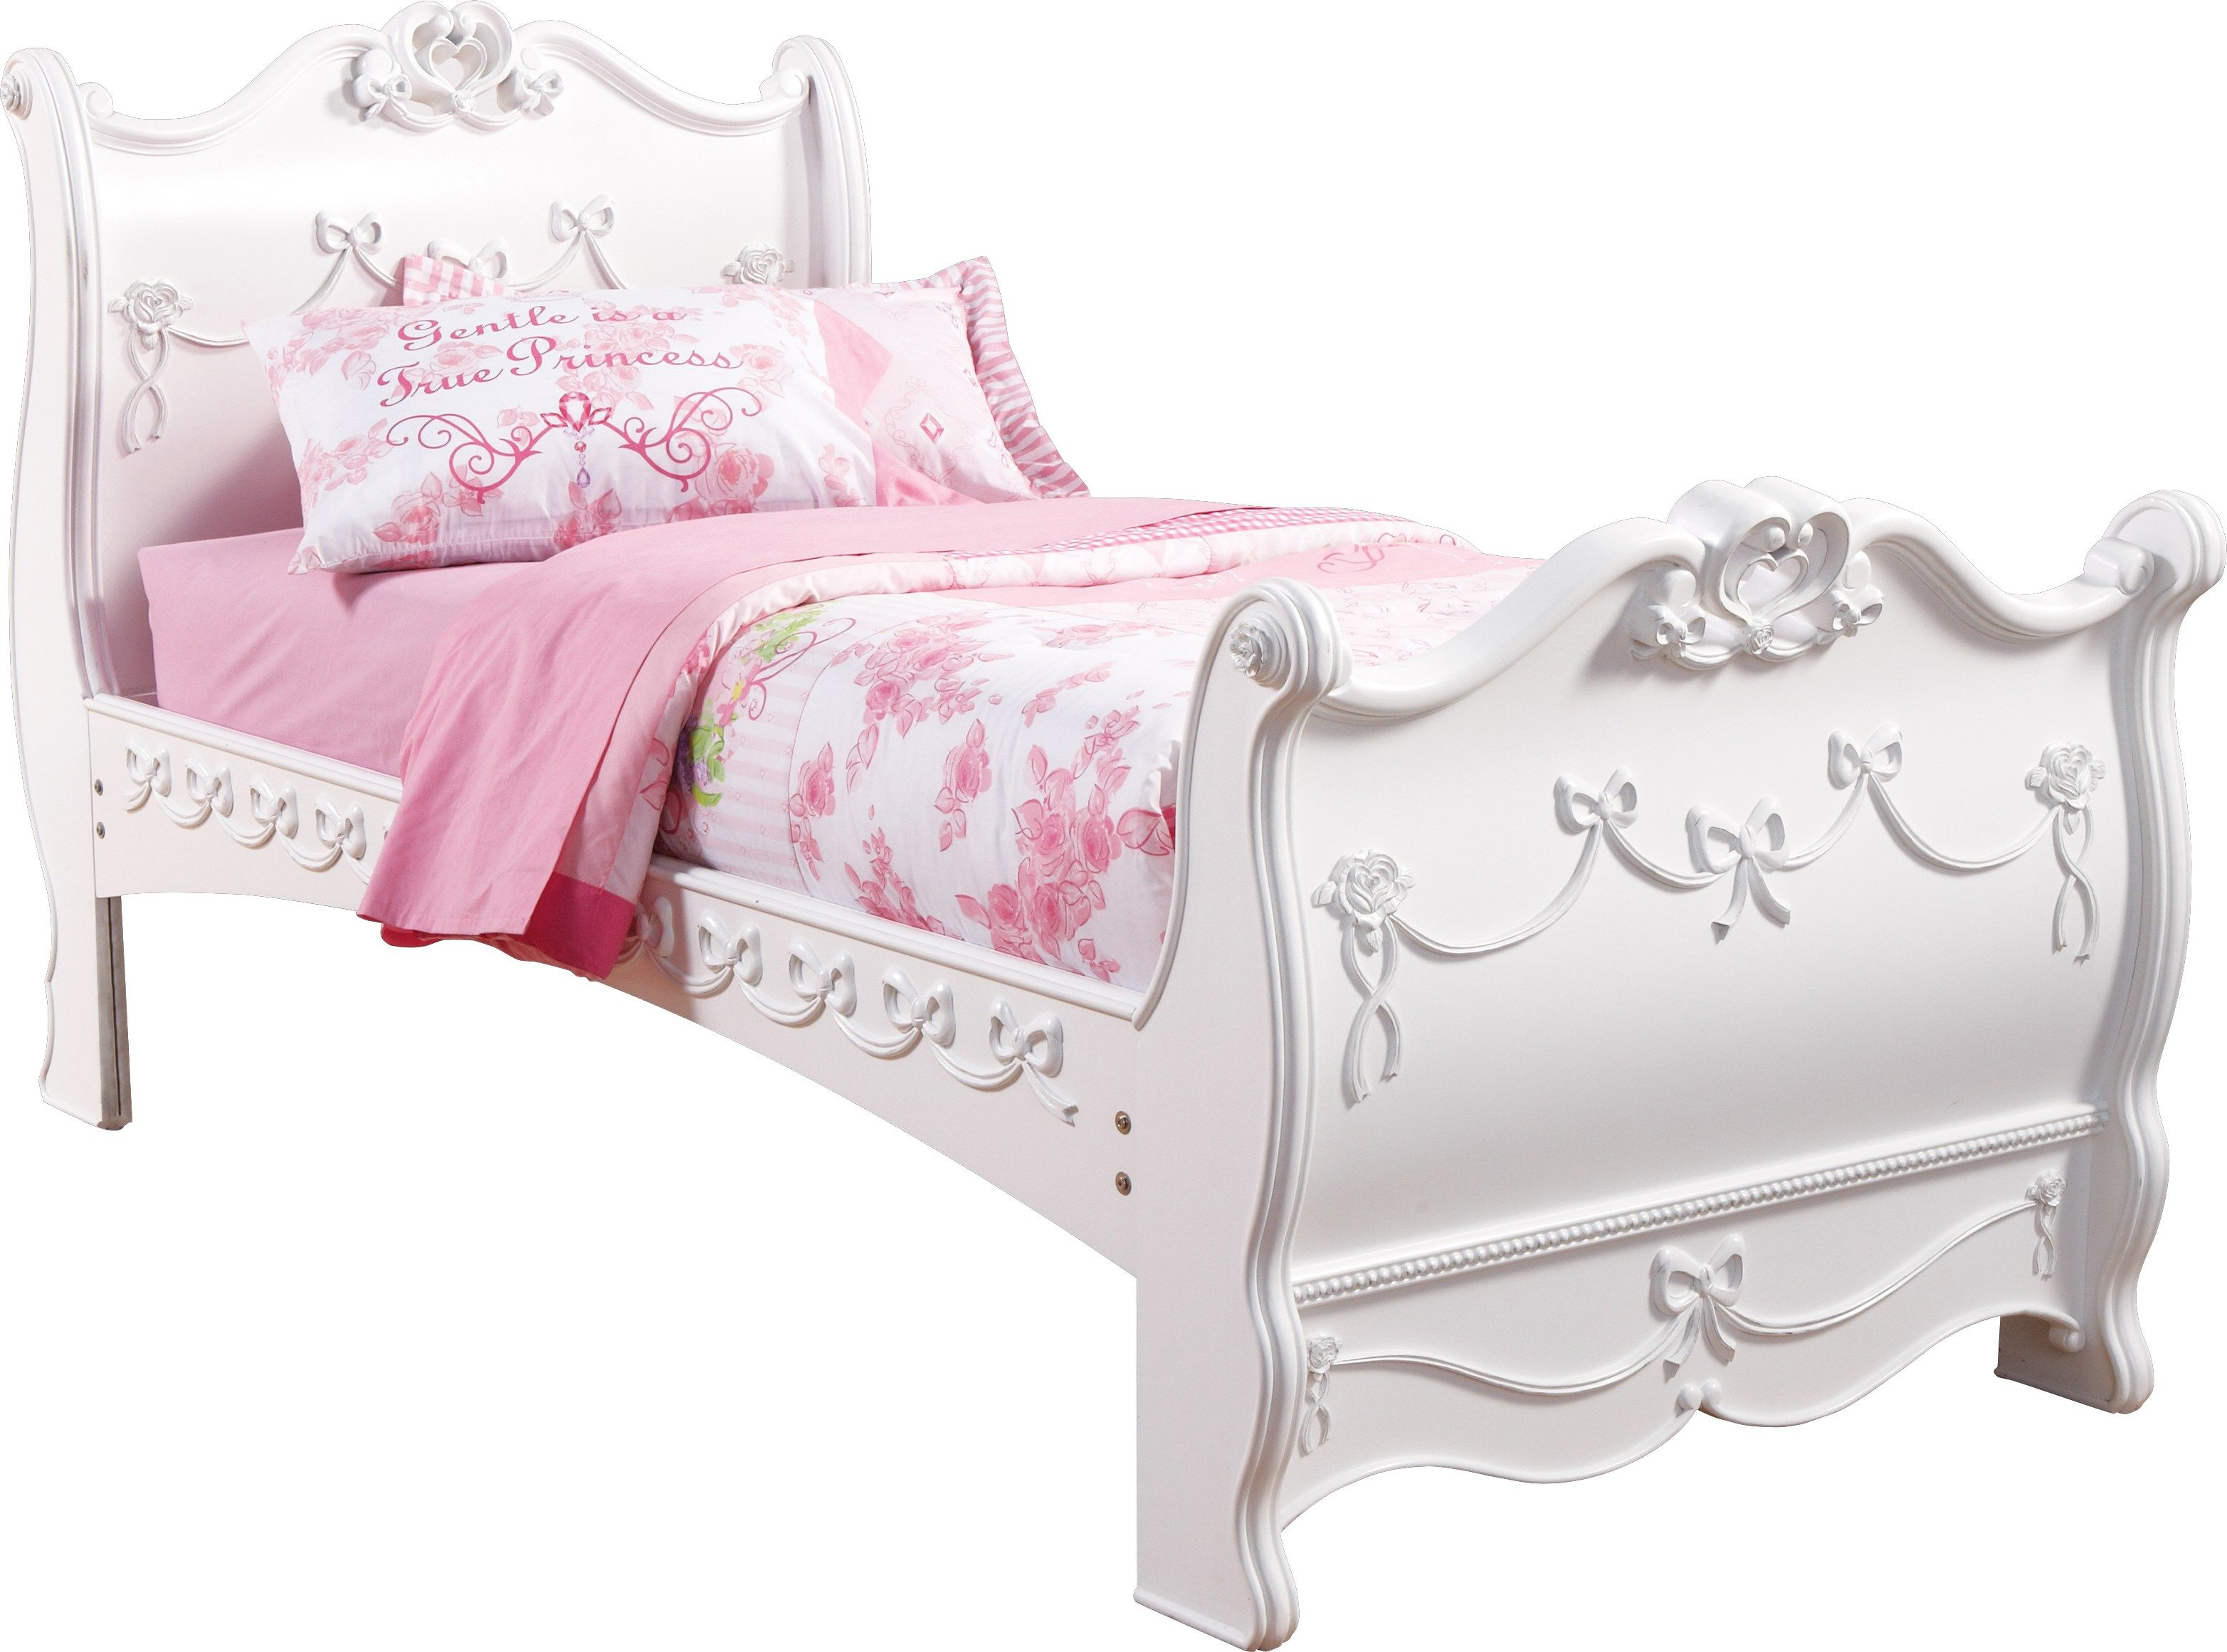 Disney Princess White 3 Pc Full Sleigh Bed Twin Sleigh Bed